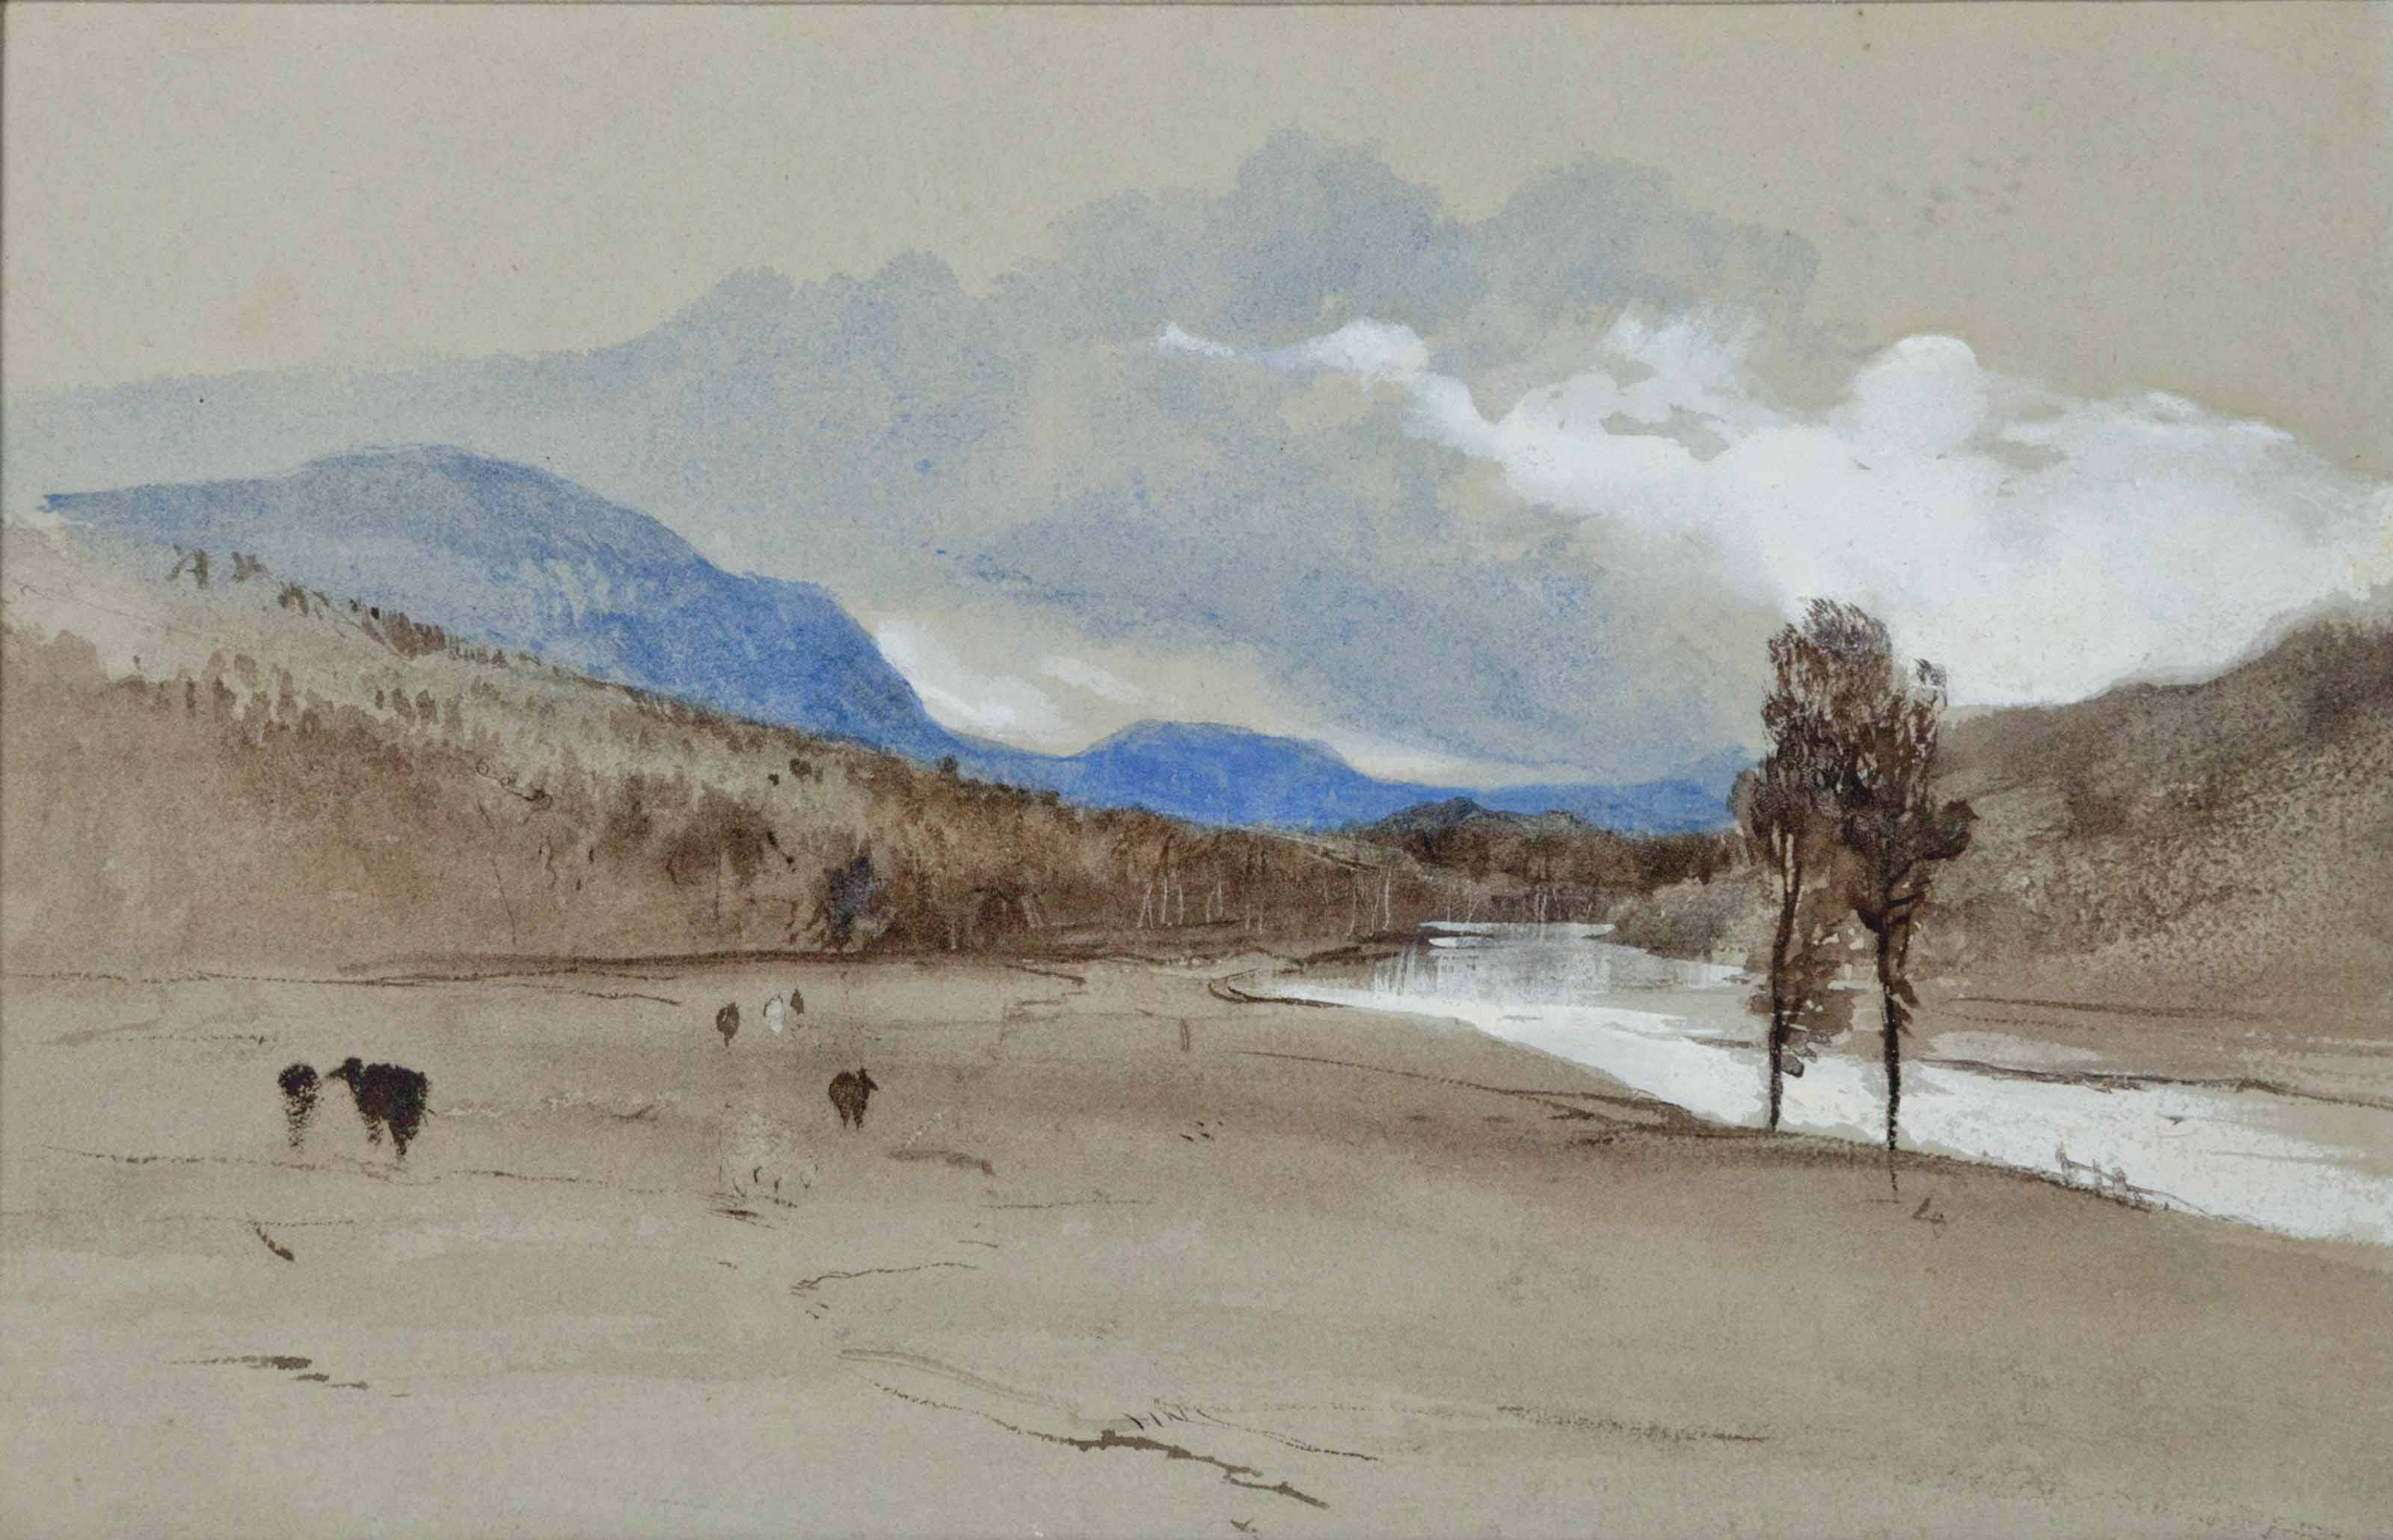 Landscape with mountains and river